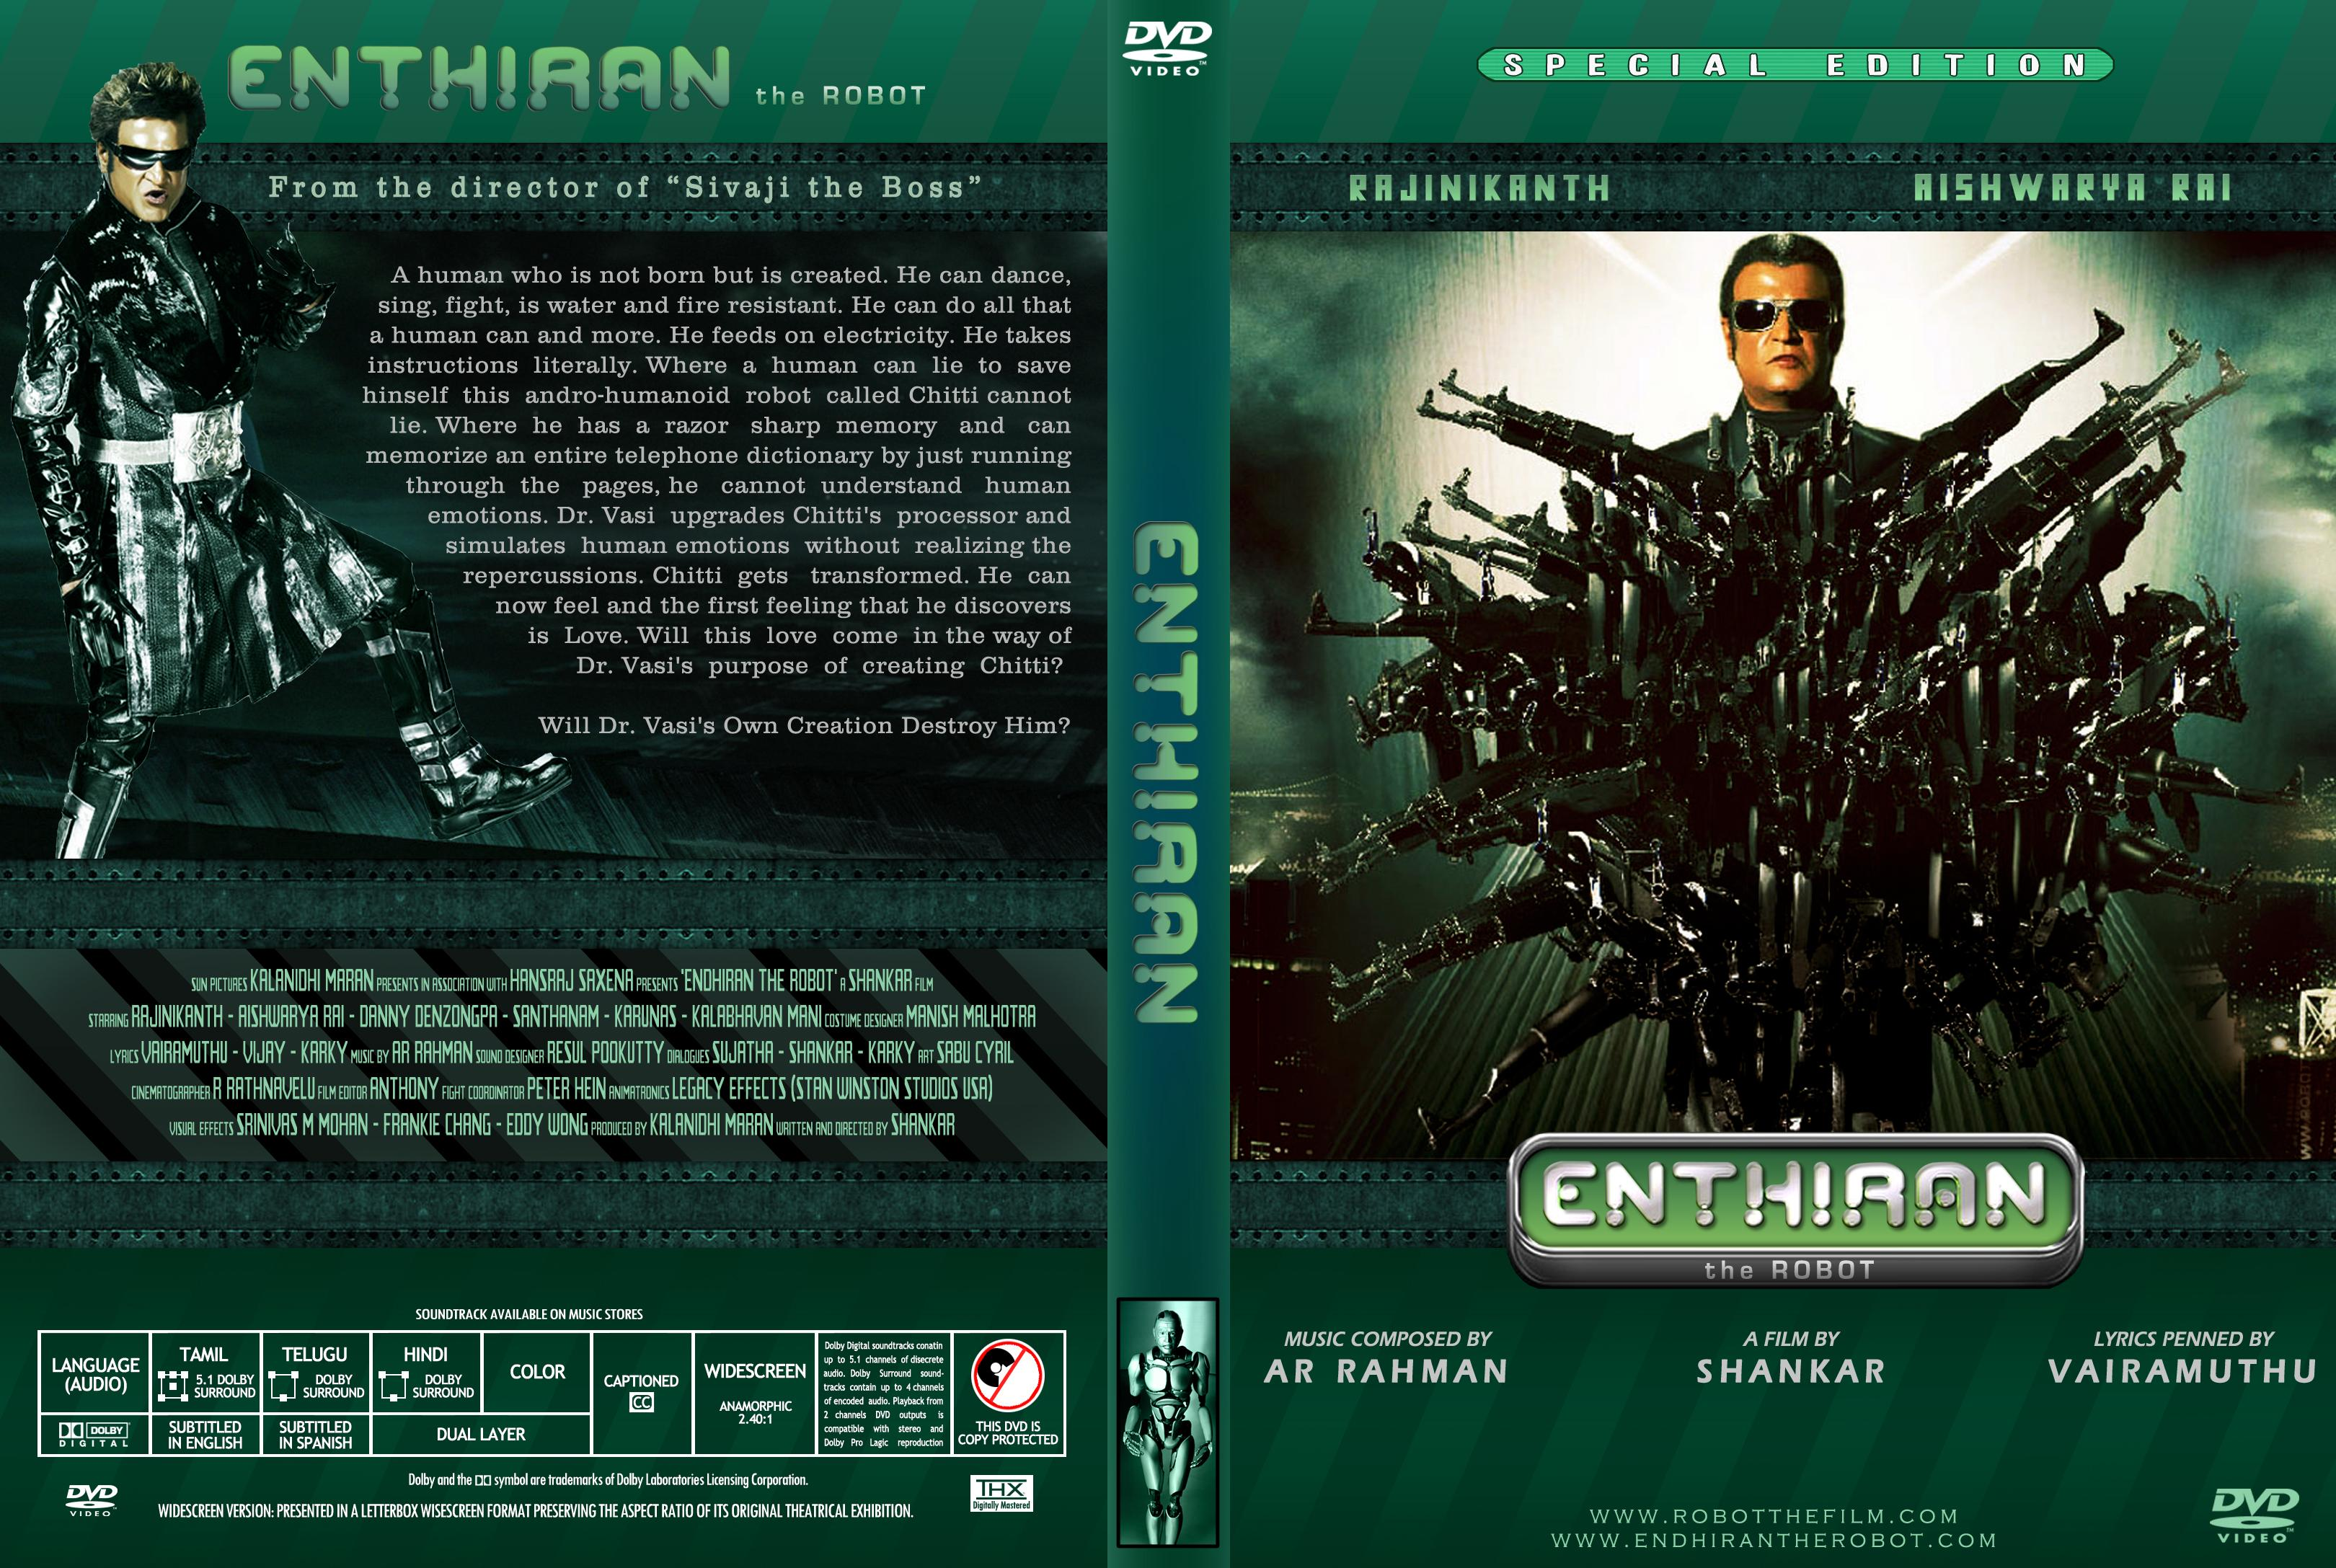 Endhiran robot movie wallpapers in jpg format for free download.